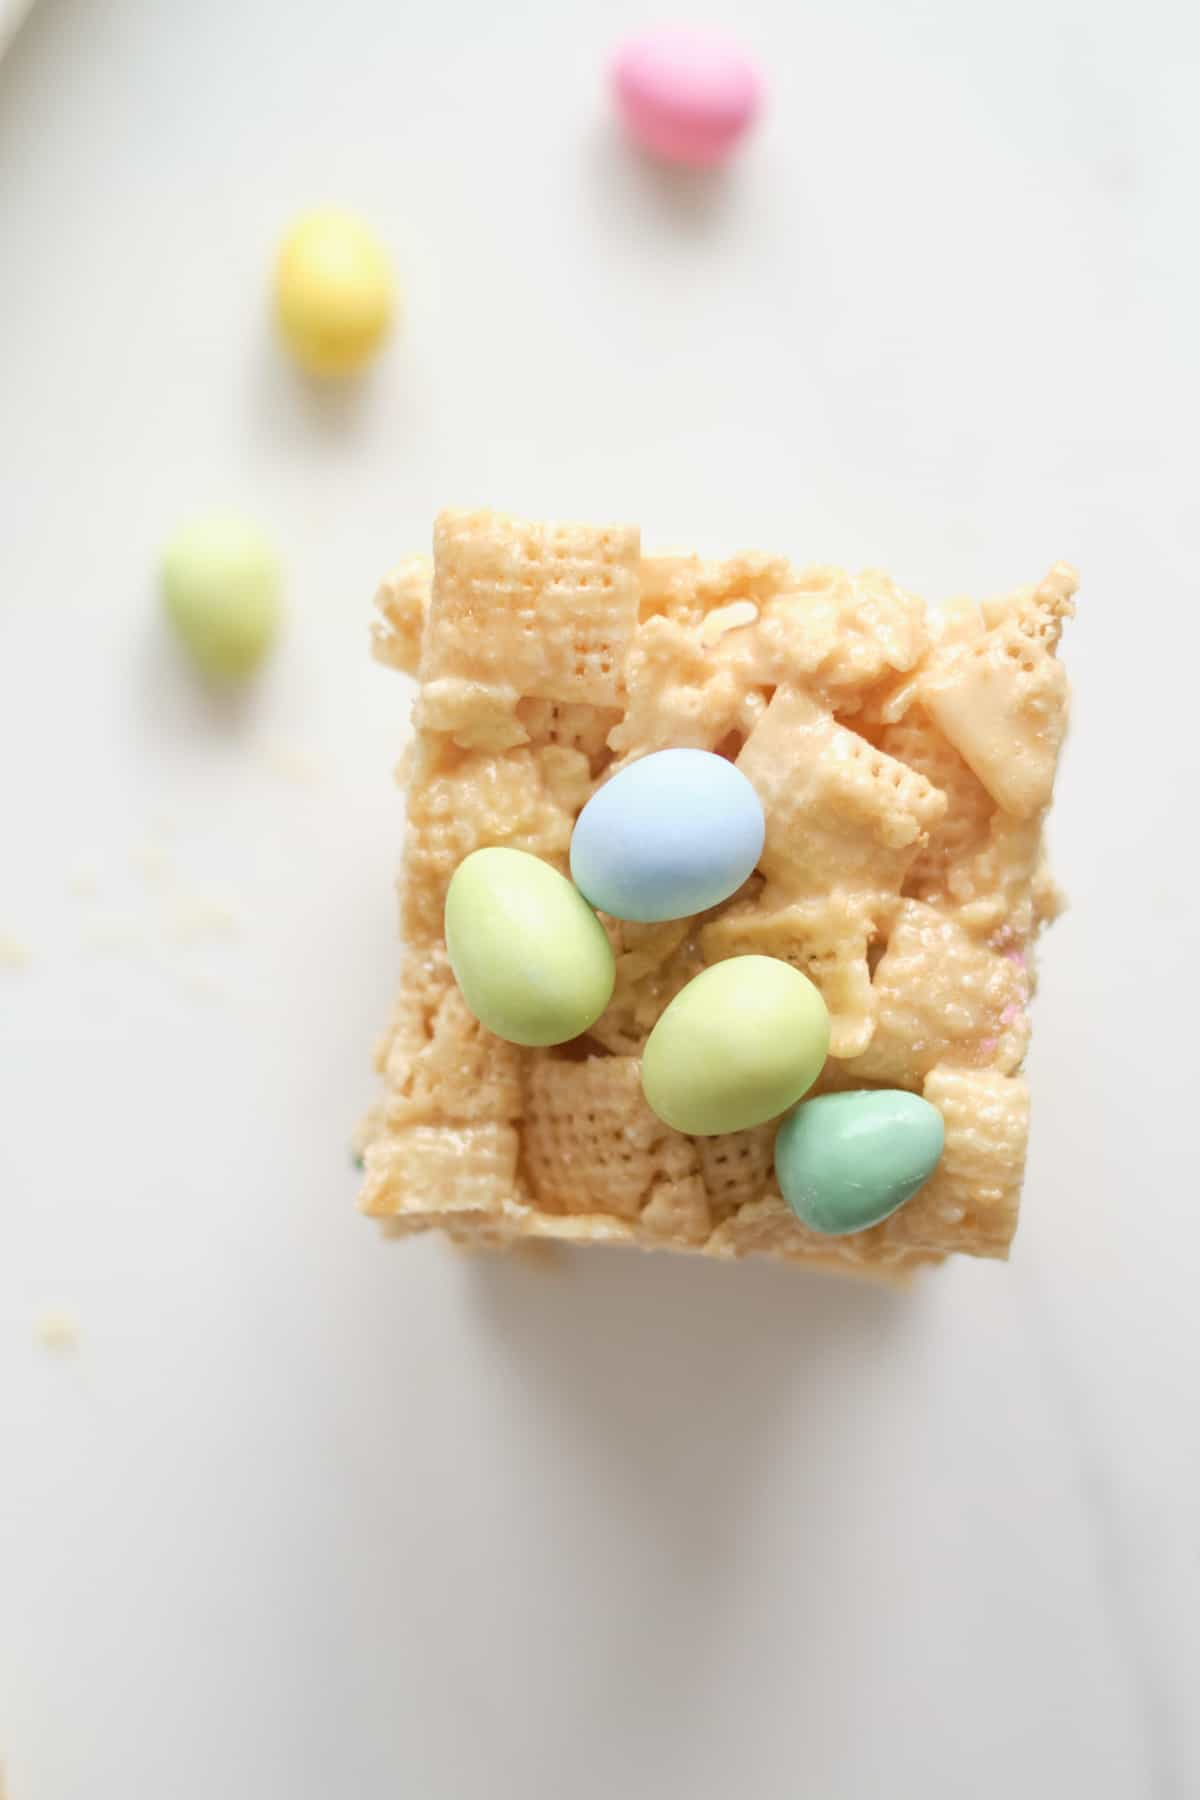 one of the finished chex bars topped with mini eggs